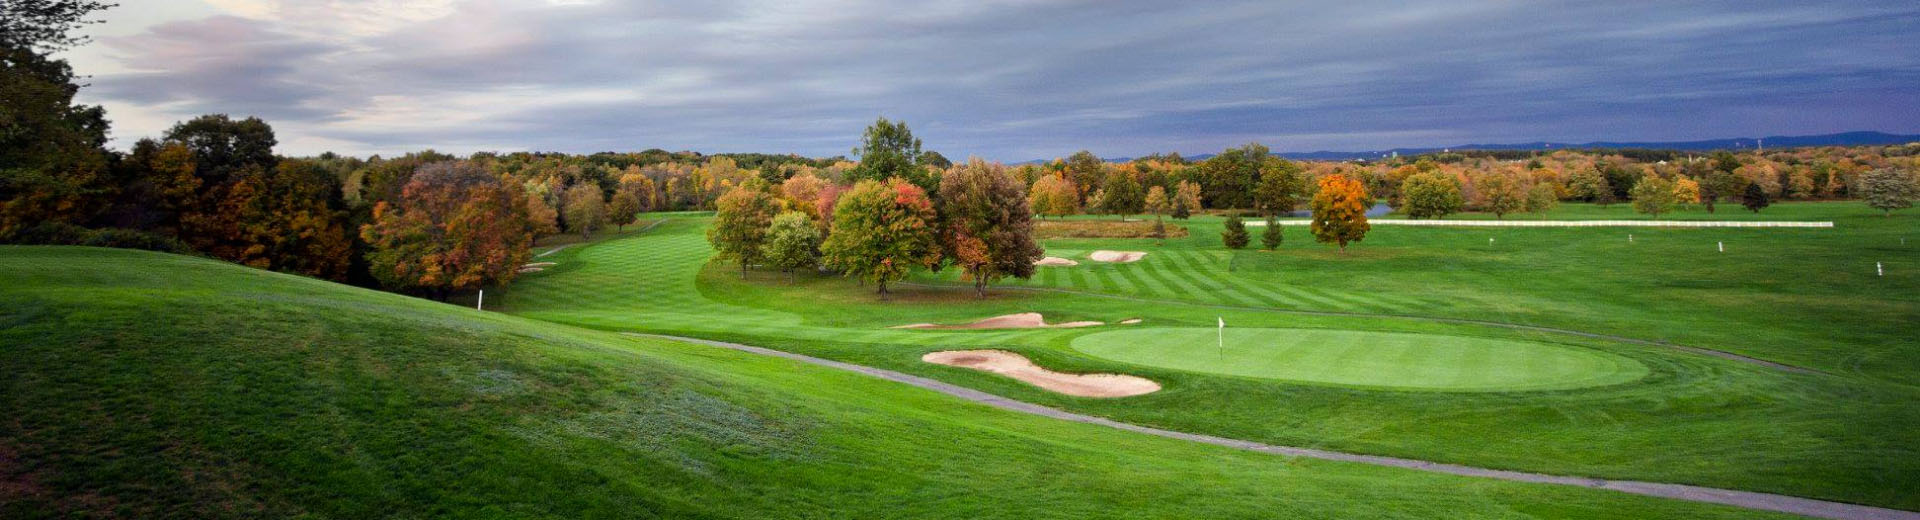 Fall colors emerge on the course at Crestview Country Club